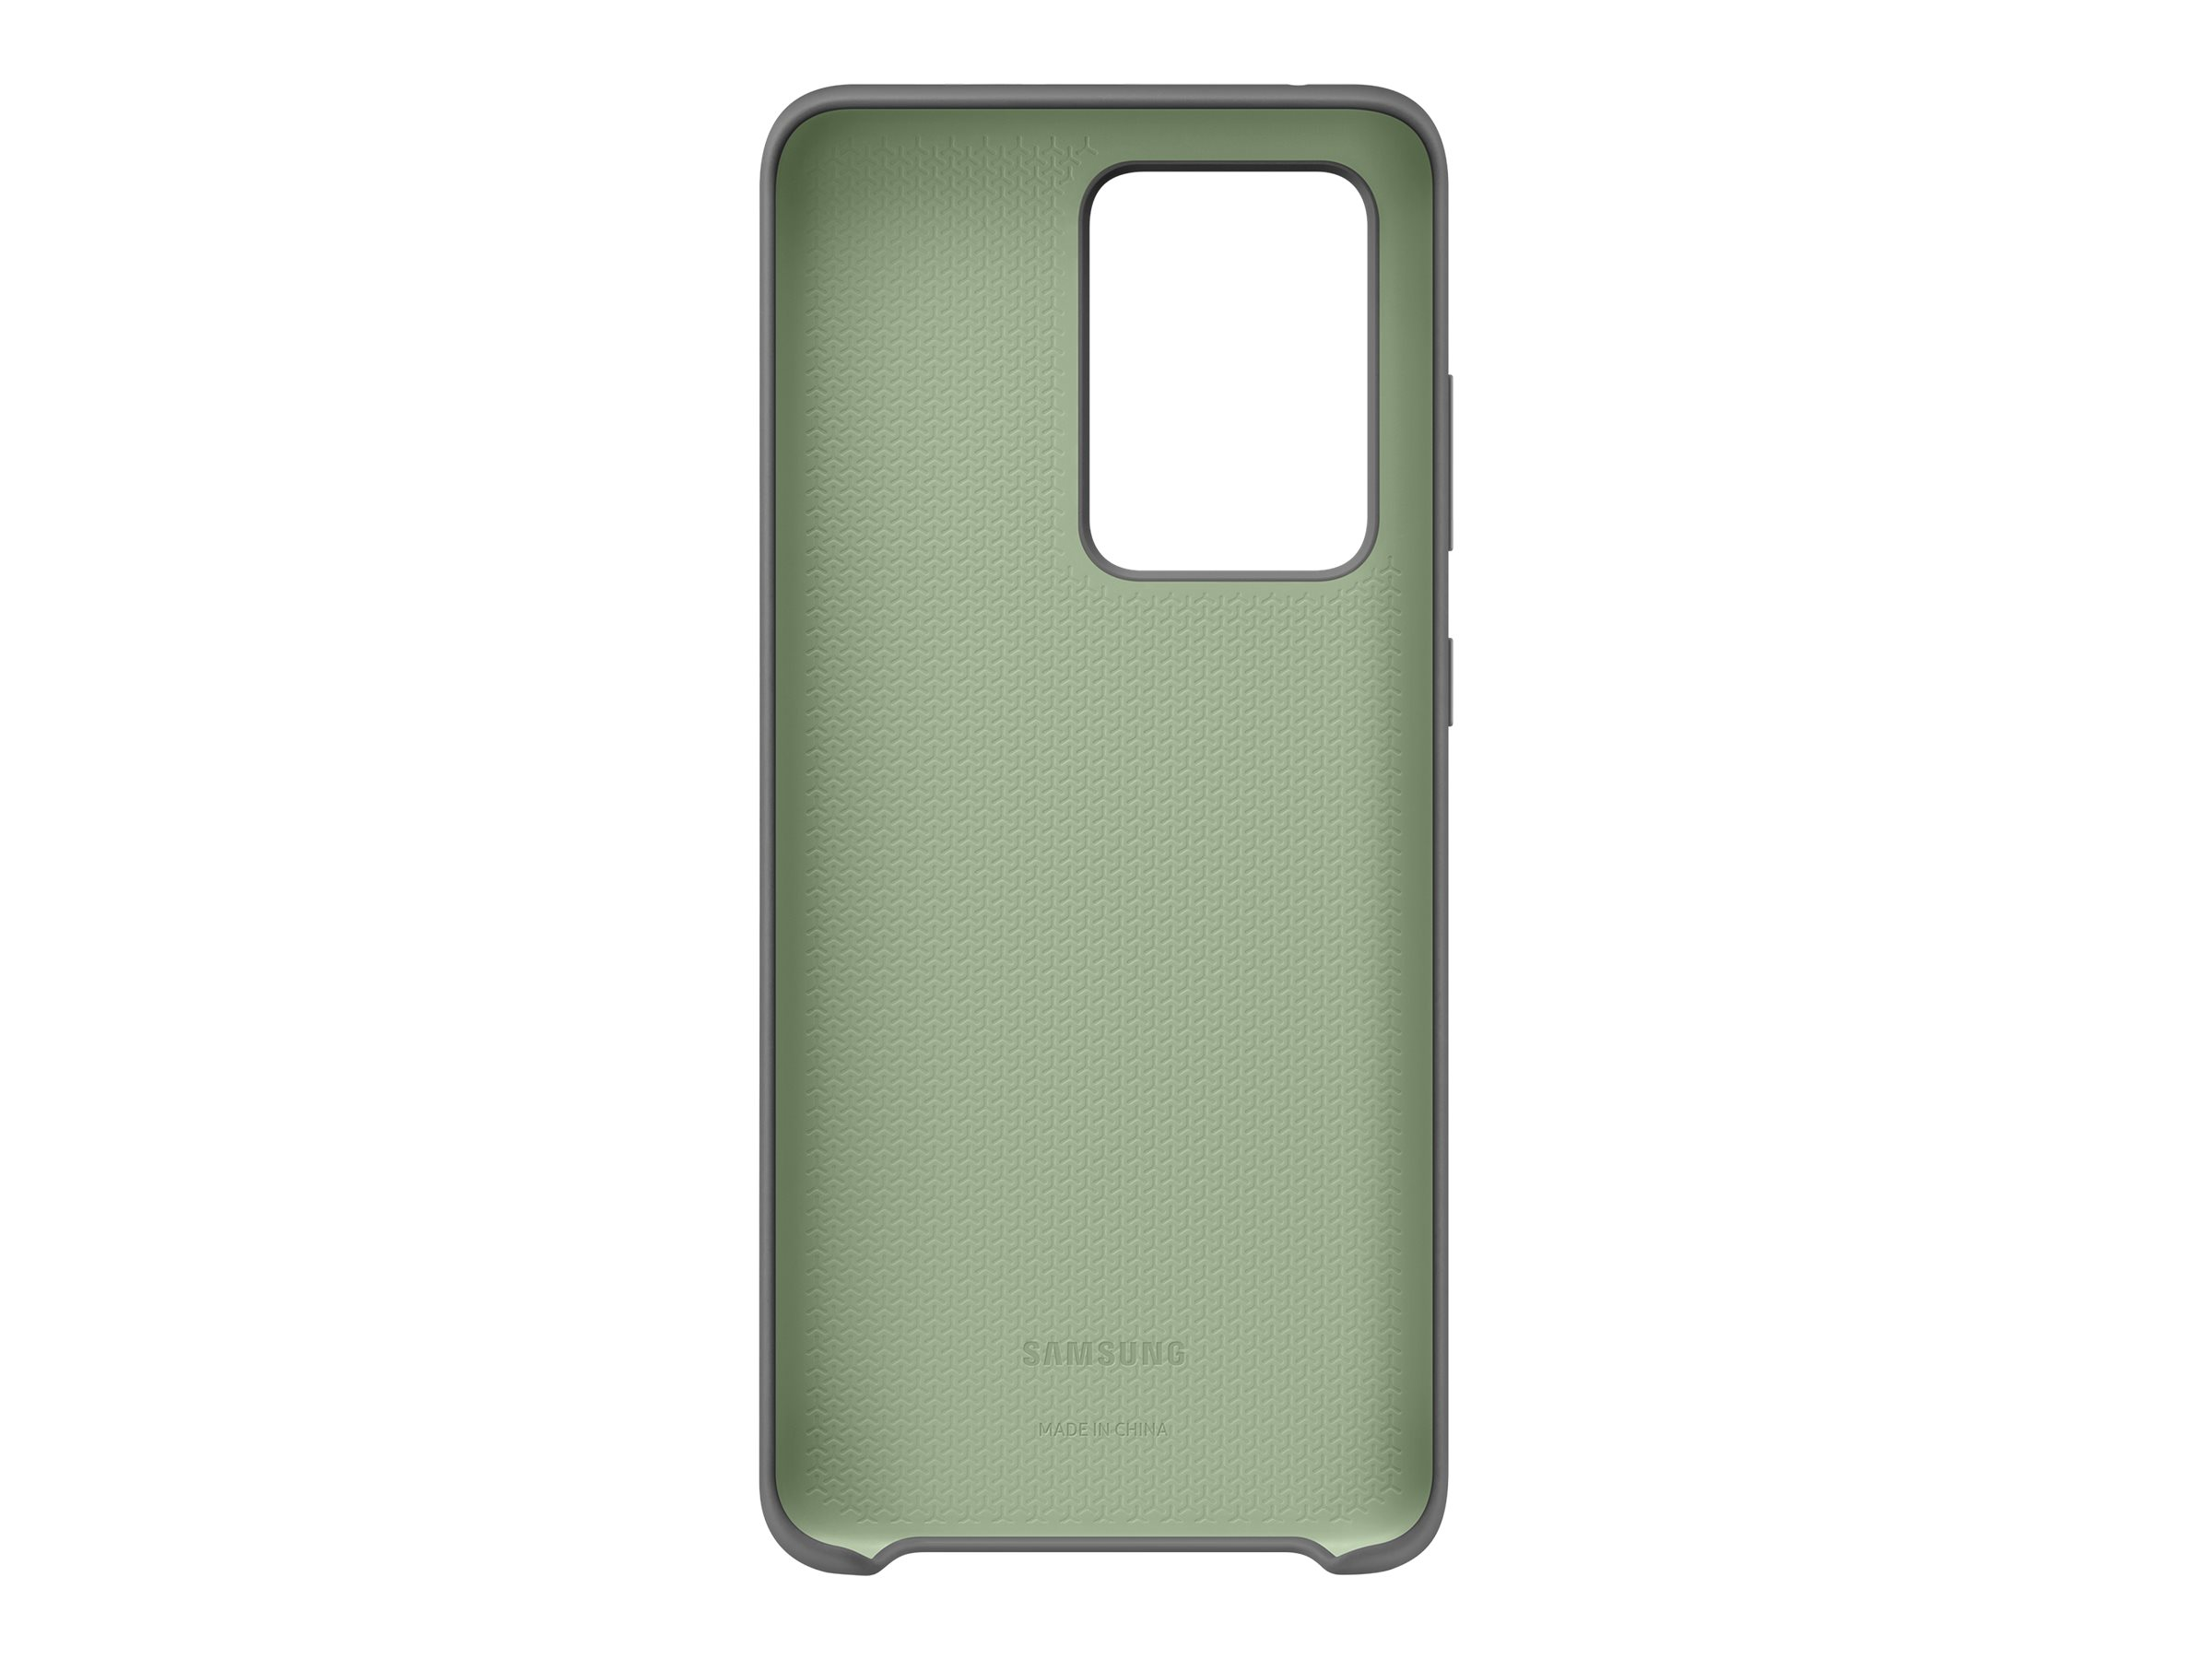 Samsung Silicone Cover EF-PG988 - back cover for cell phone